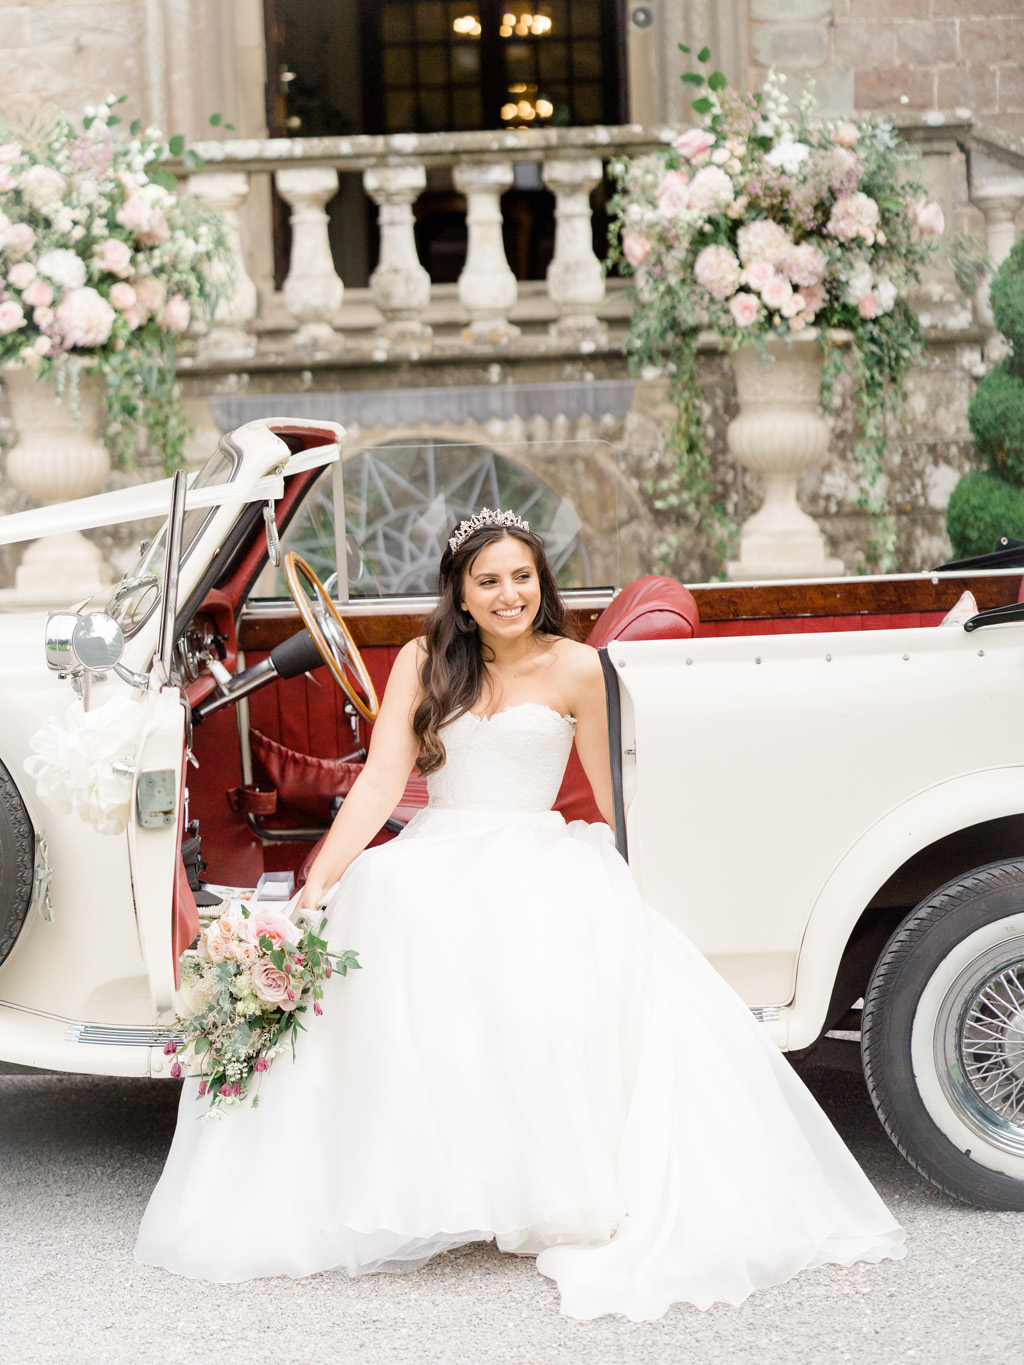 Clearwell Castle wedding blog bride and groom with table styling and extravagant styled florals